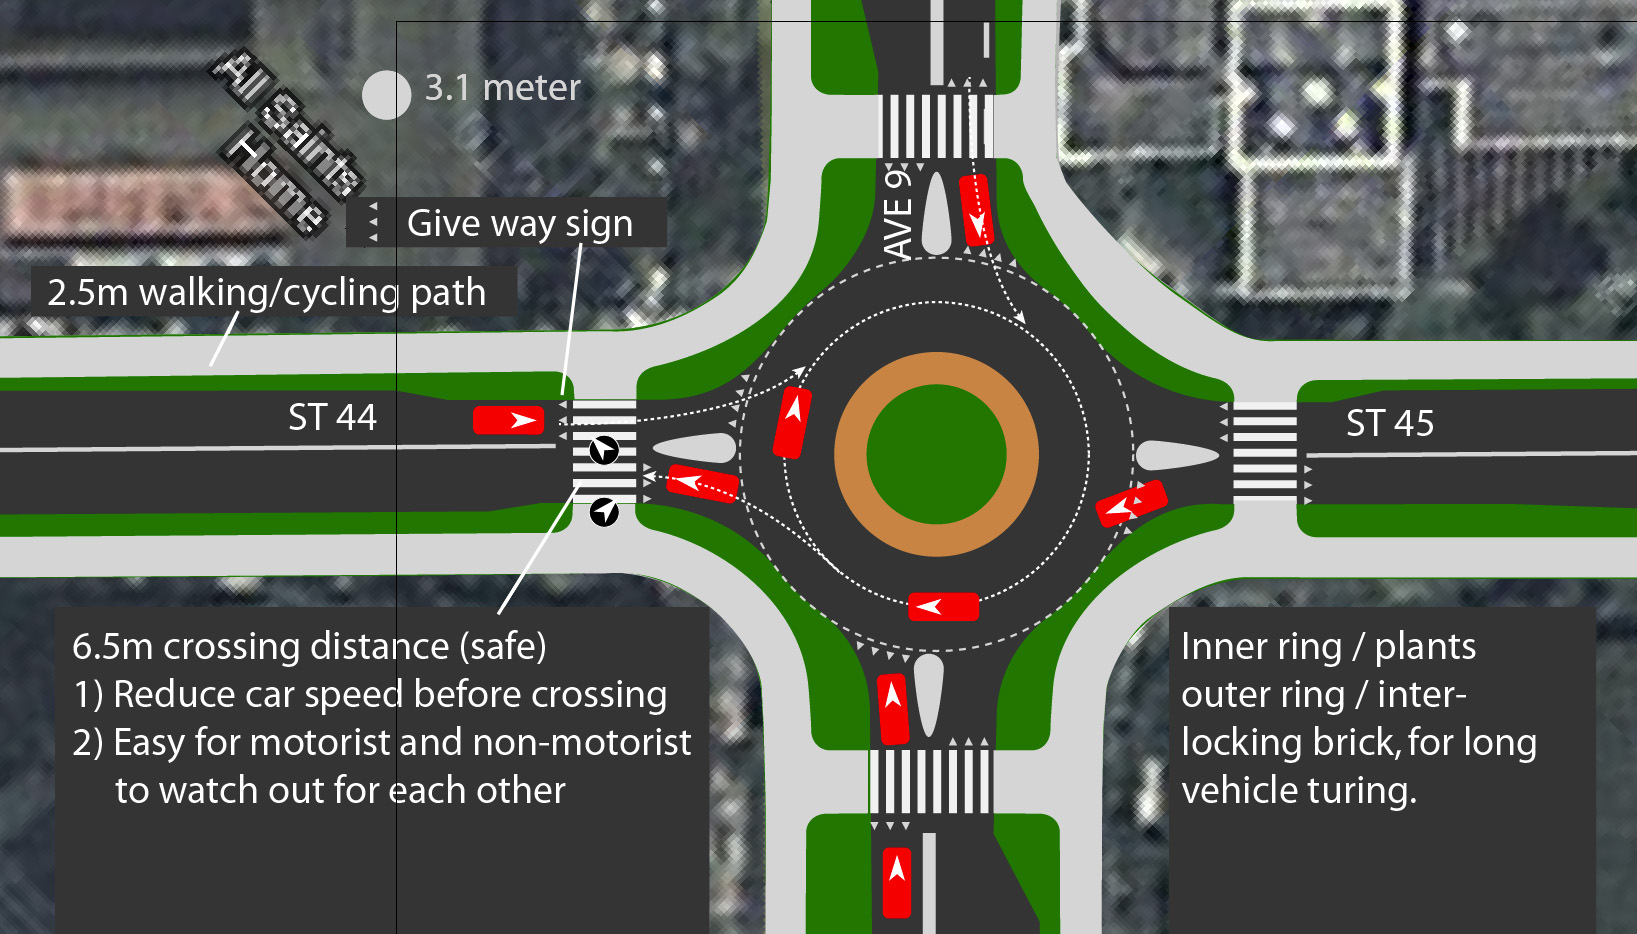 Dutch style roundabout - a safer intersection design